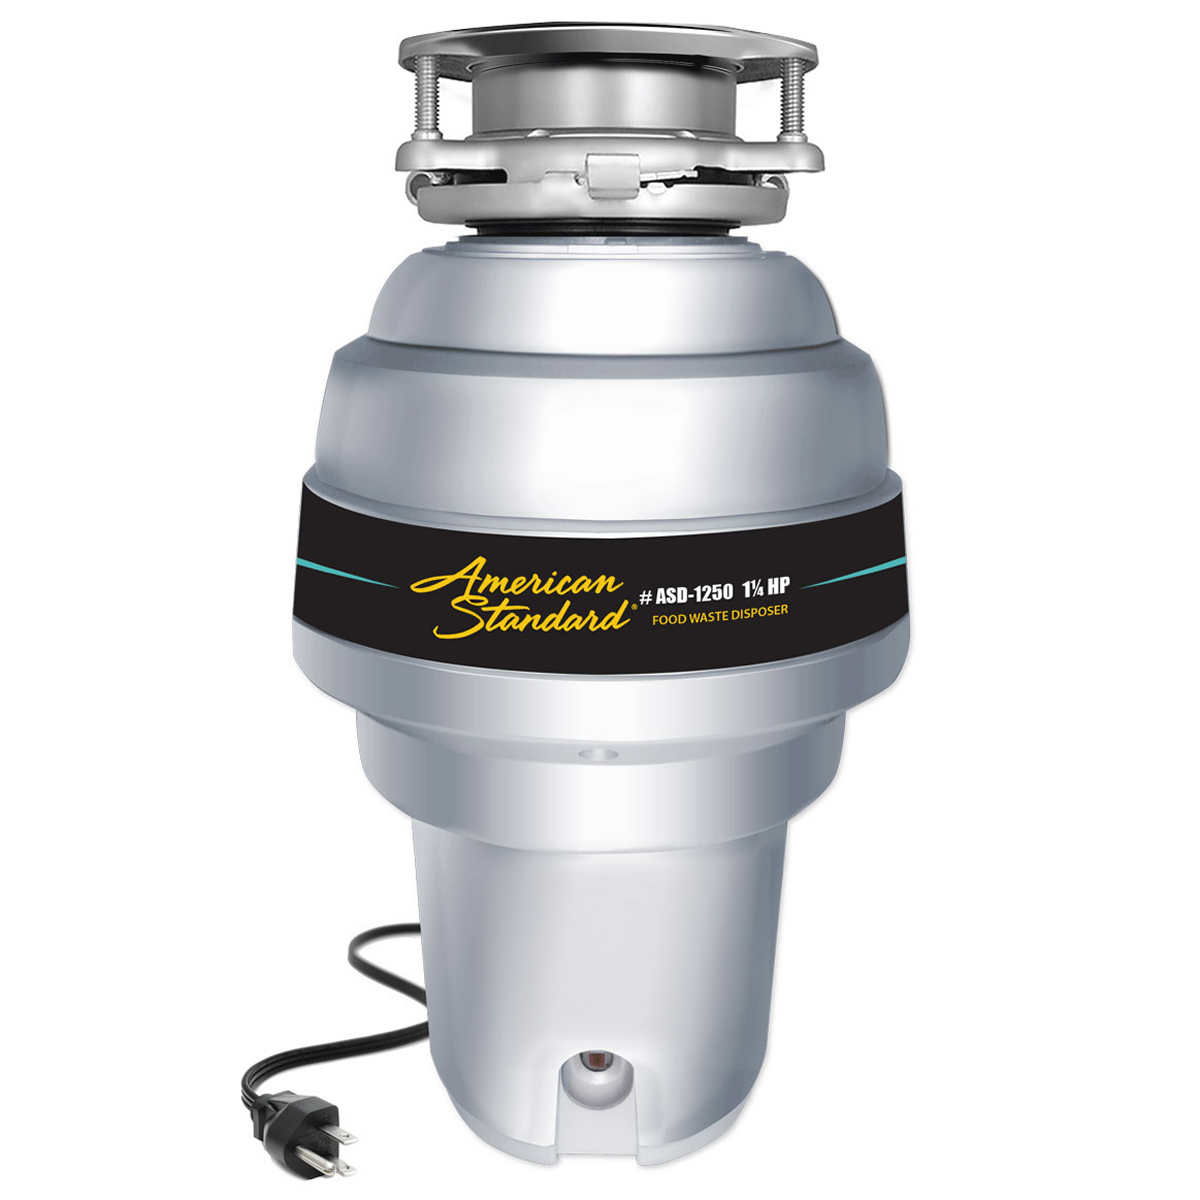 American Standard 1 25 HP Food Waste Disposer